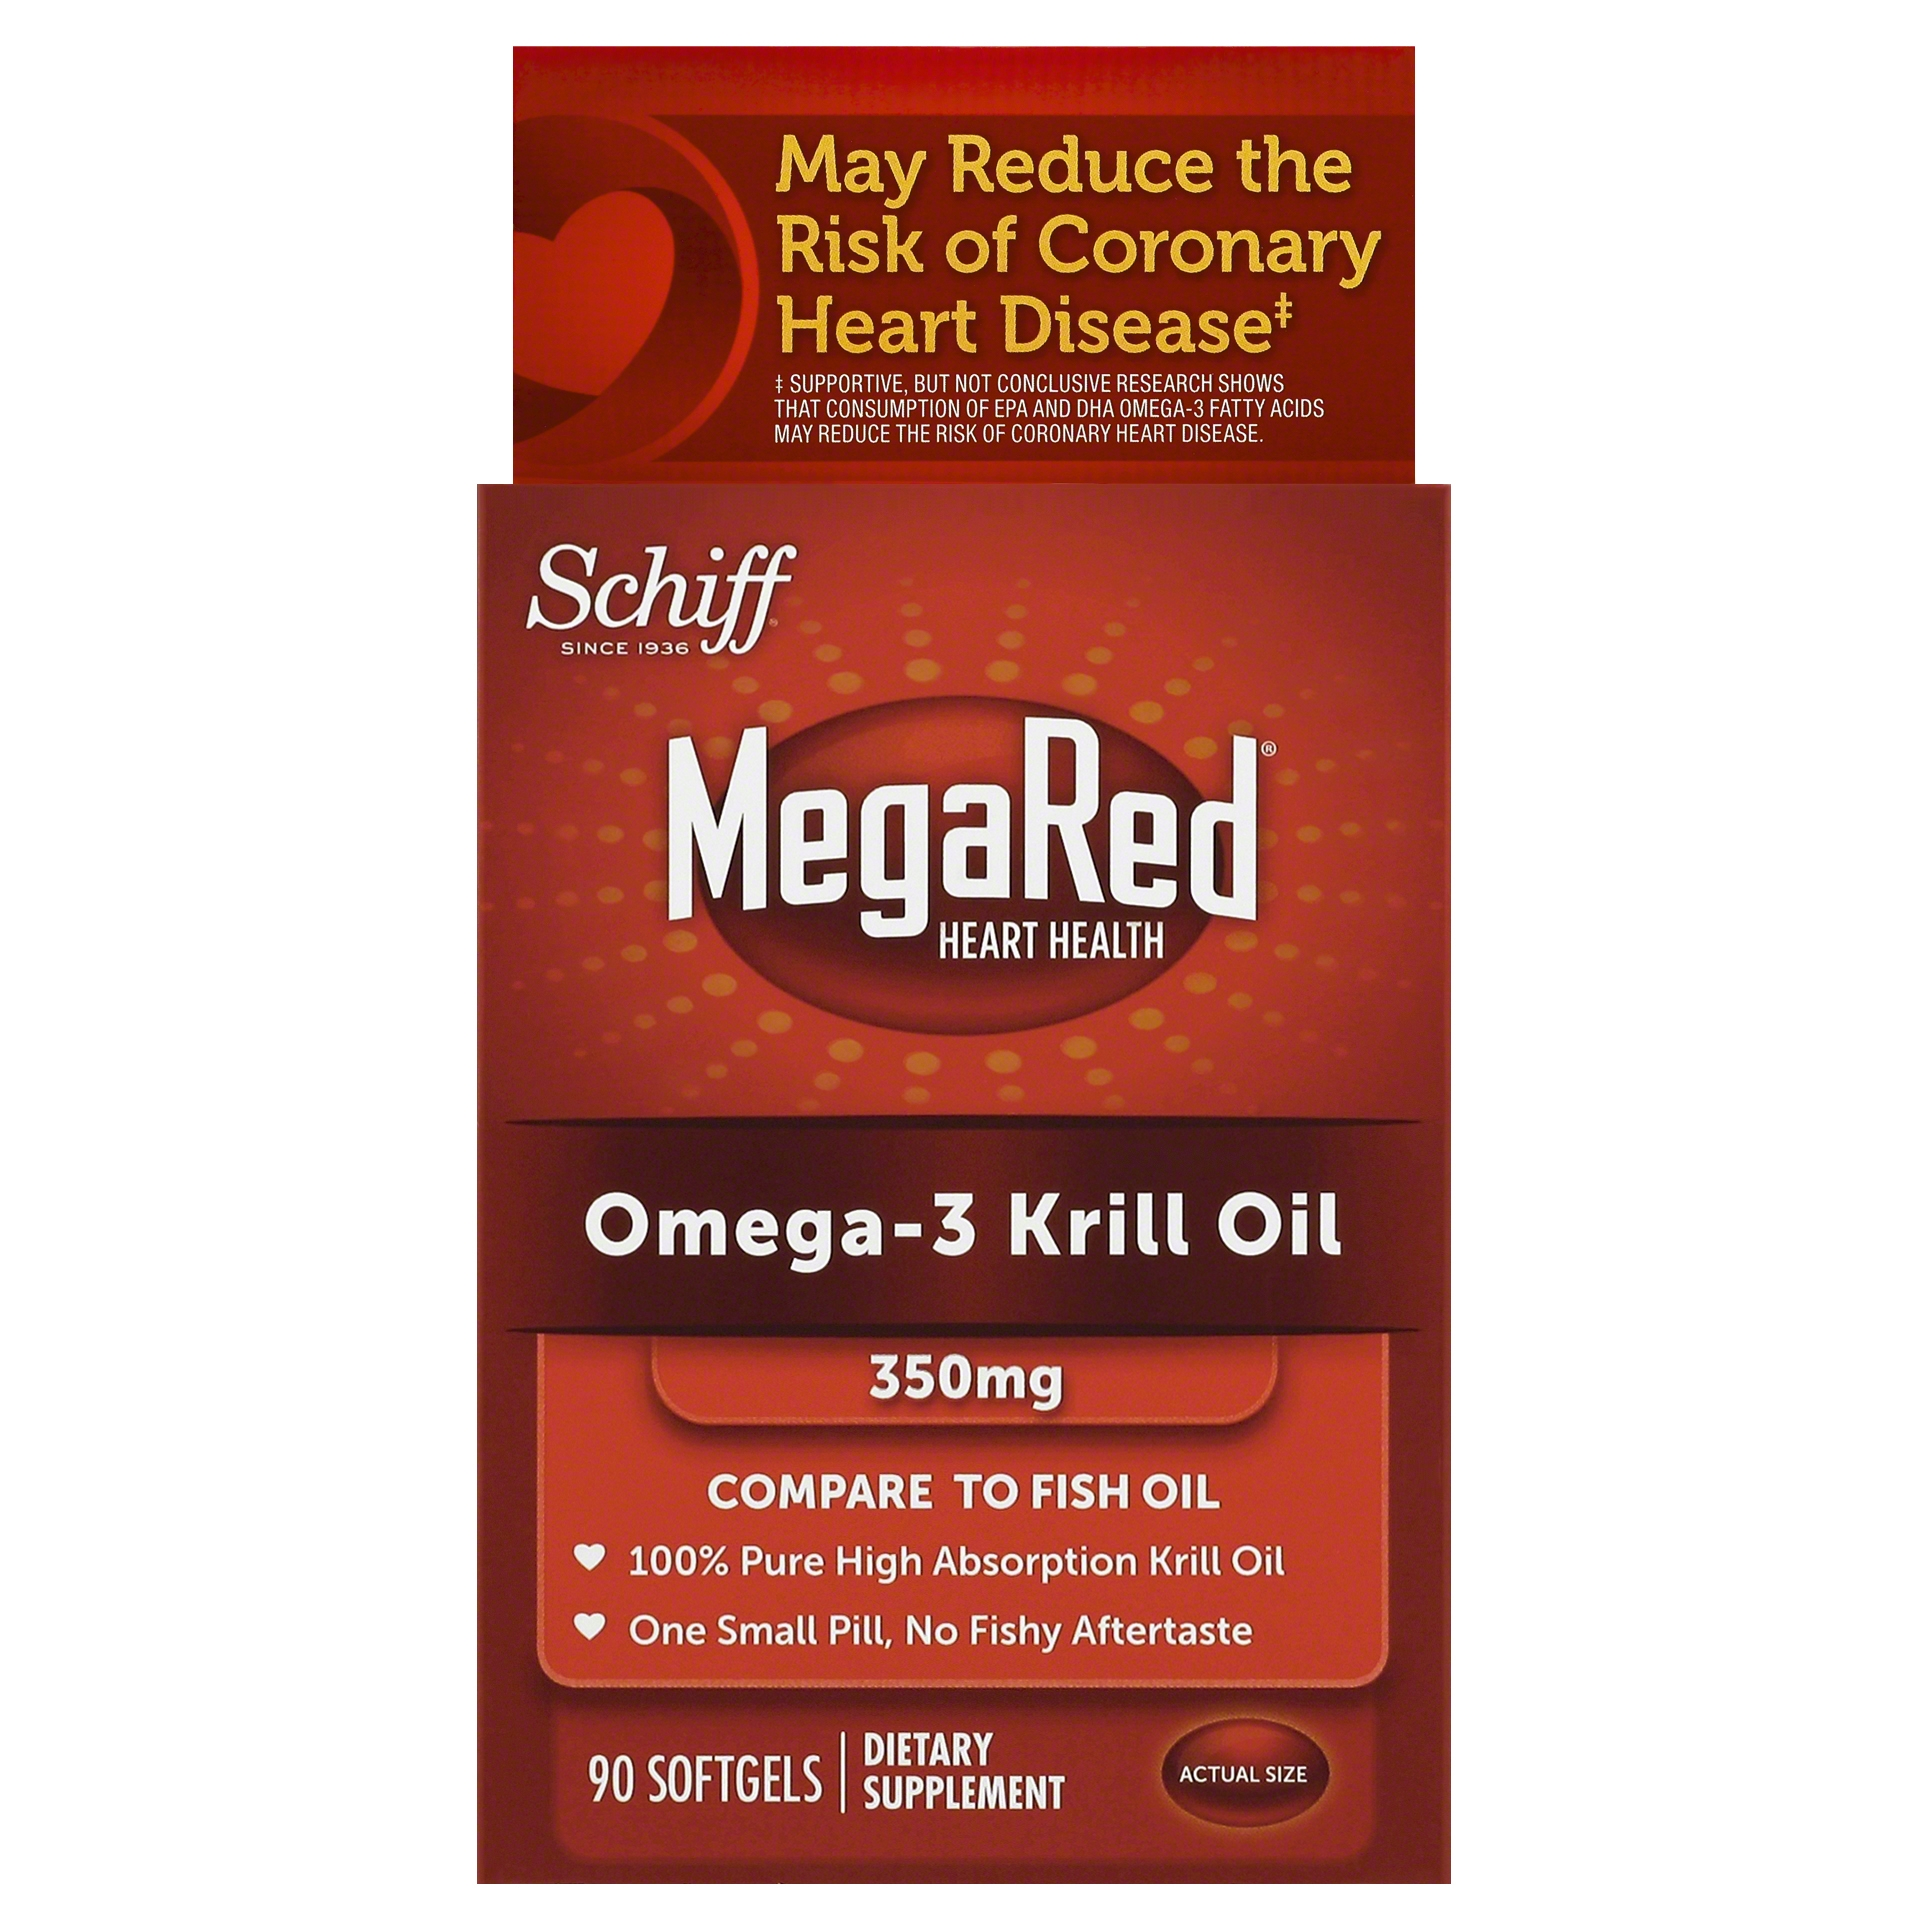 MegaRed Omega 3 Krill Oil 350mg Supplement, 90 Count